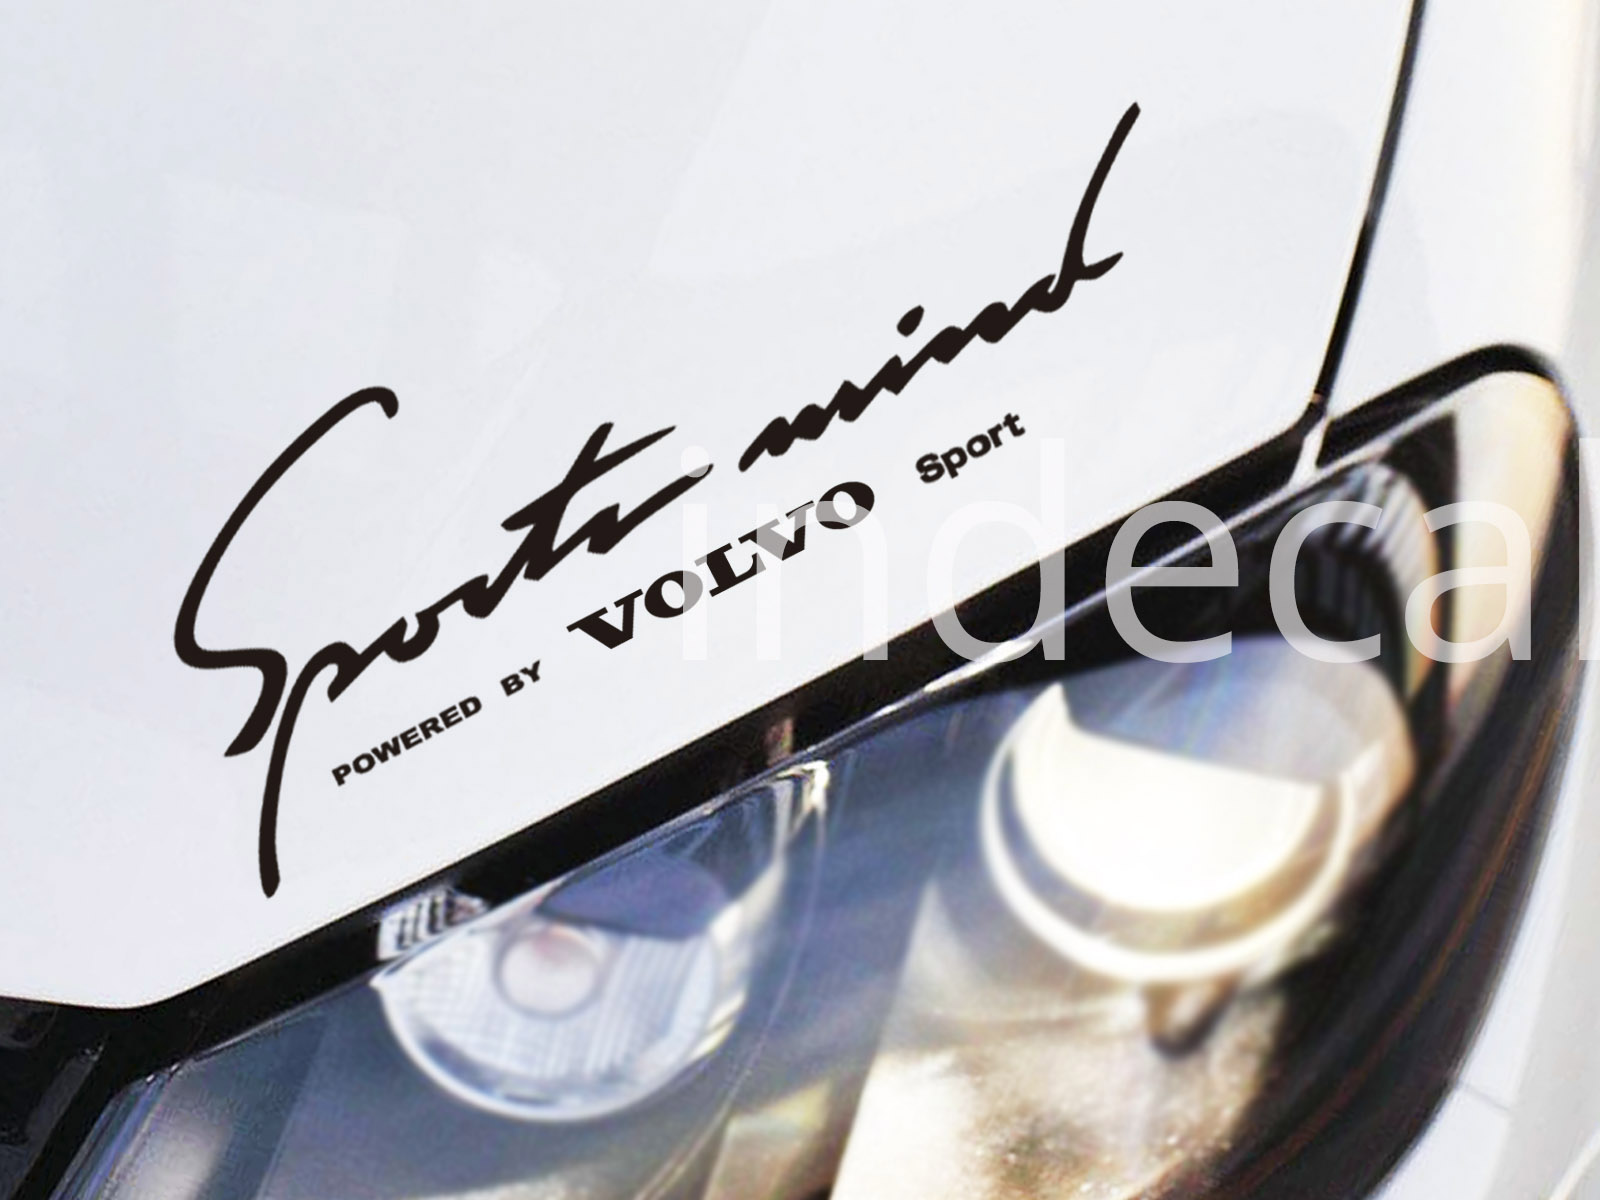 1 x Volvo Sports Mind Sticker - Black